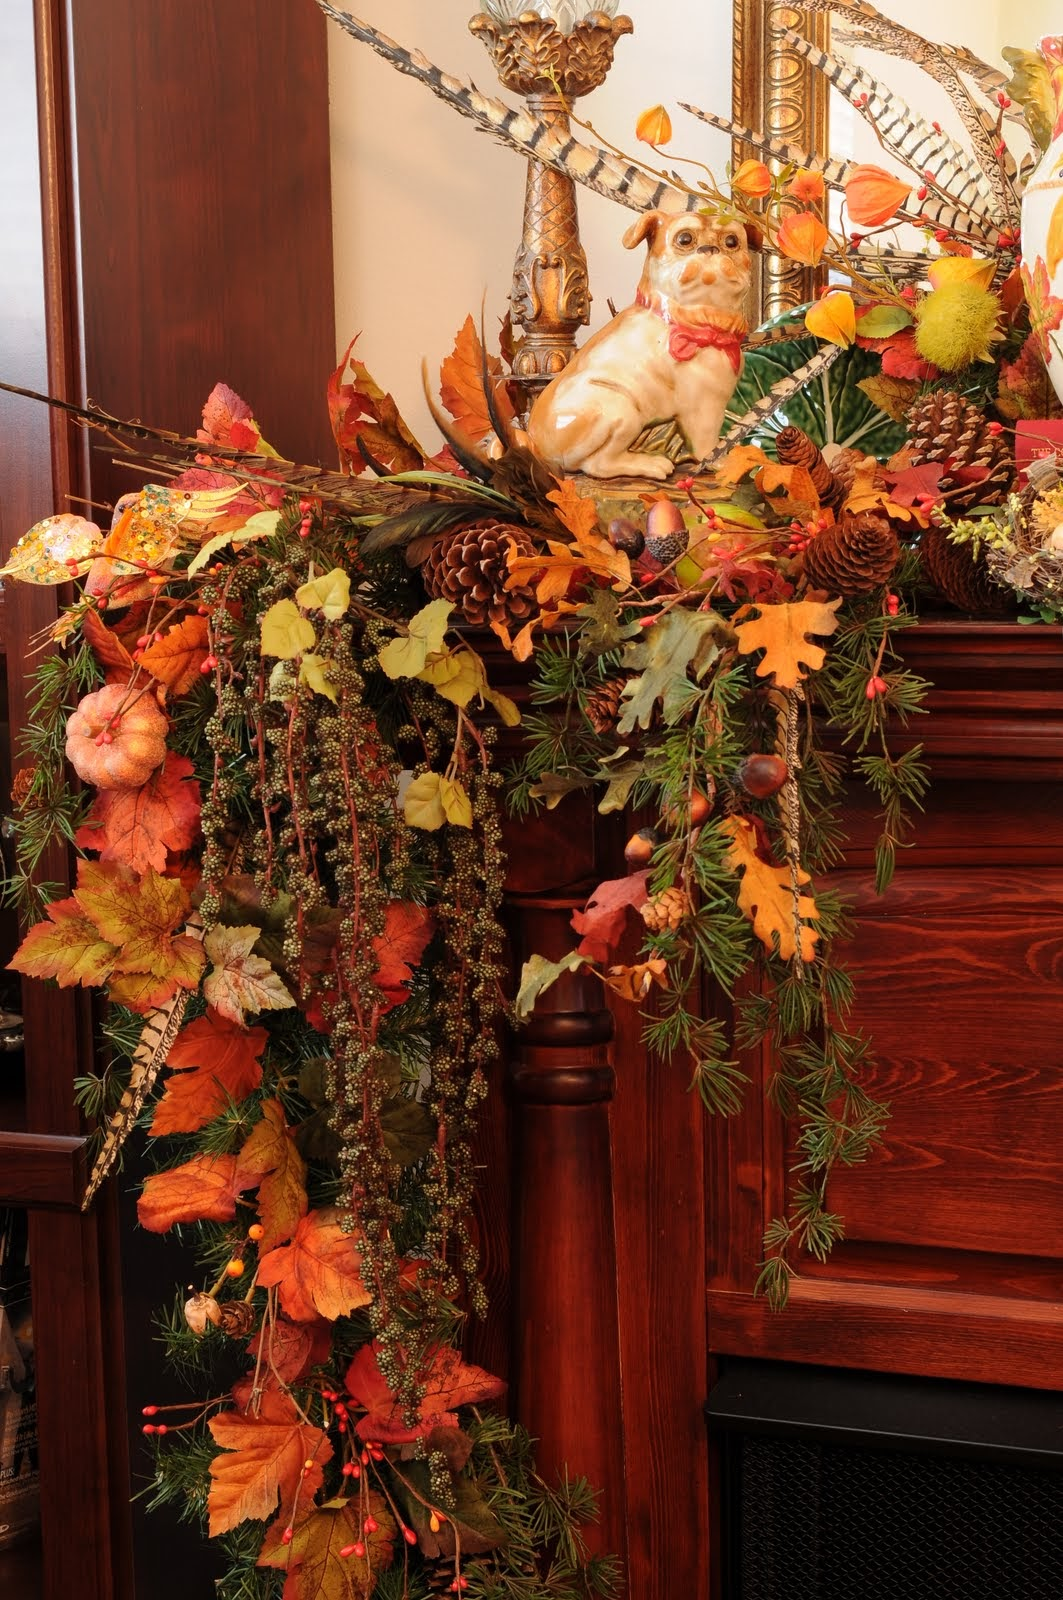 C b i d home decor and design fall decor thanksgiving for Thanksgiving home decorations